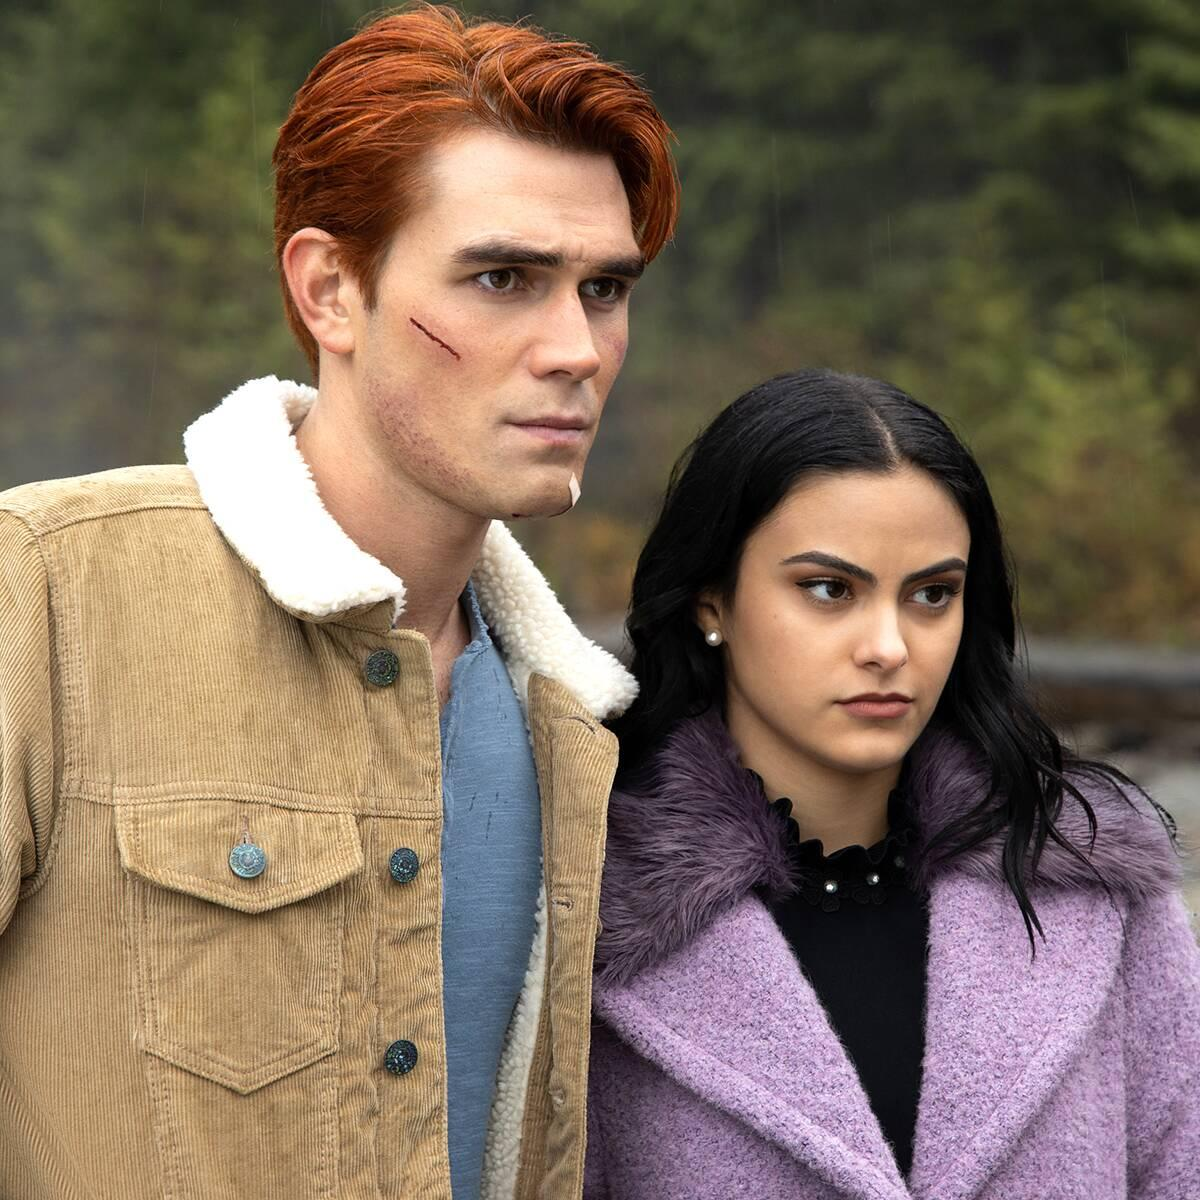 WATCH: Riverdales KJ Apa Shares The New Normal For